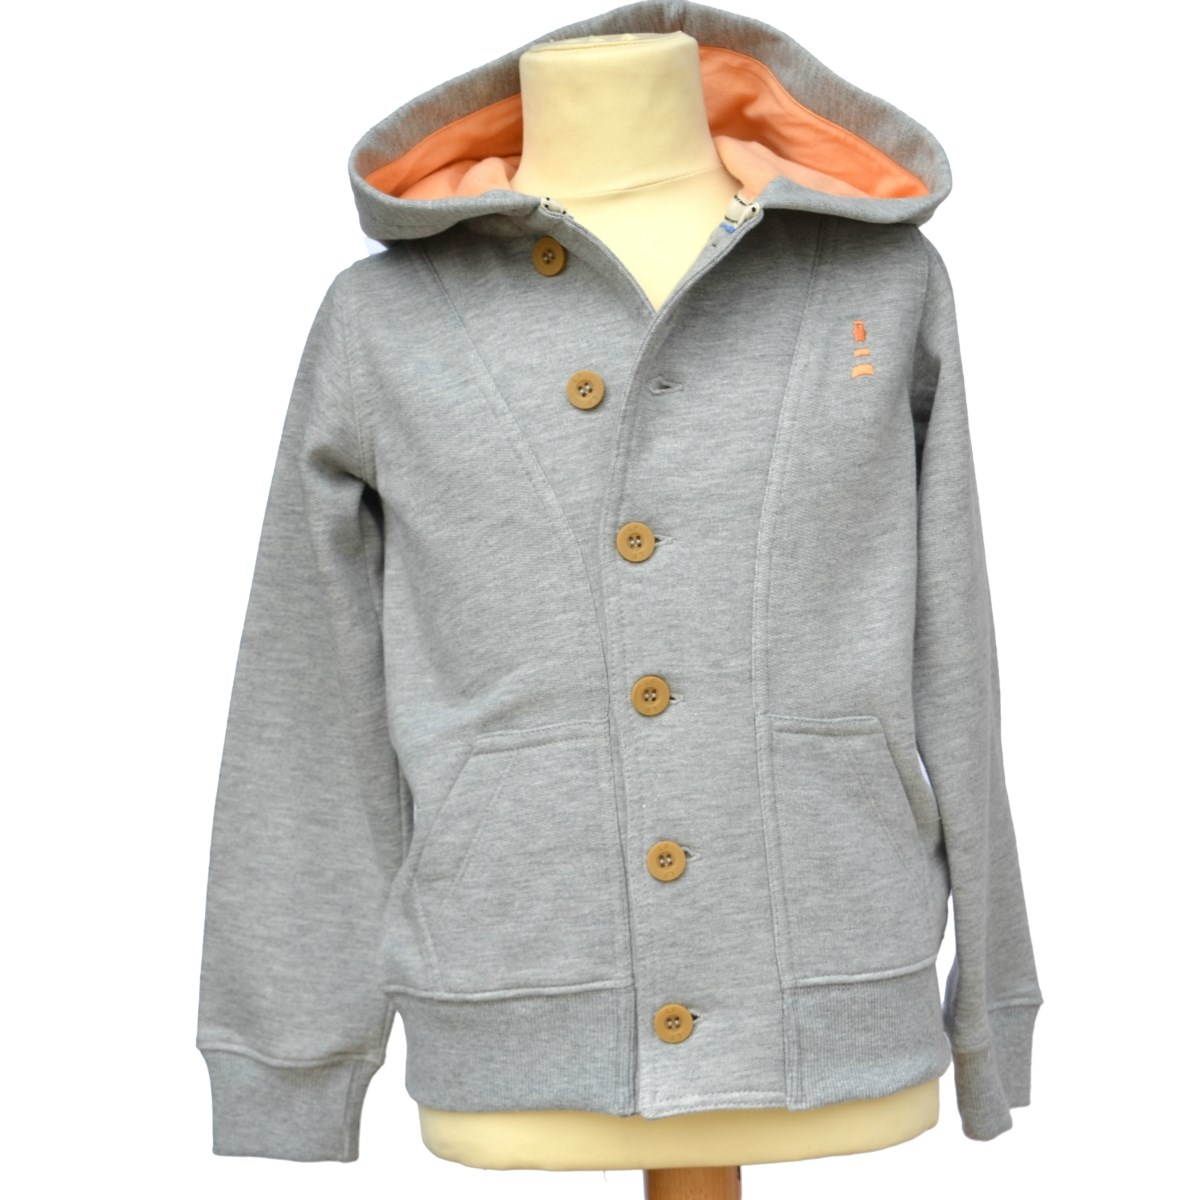 Lucas Frank Squirrel Point Hoodie in Grey